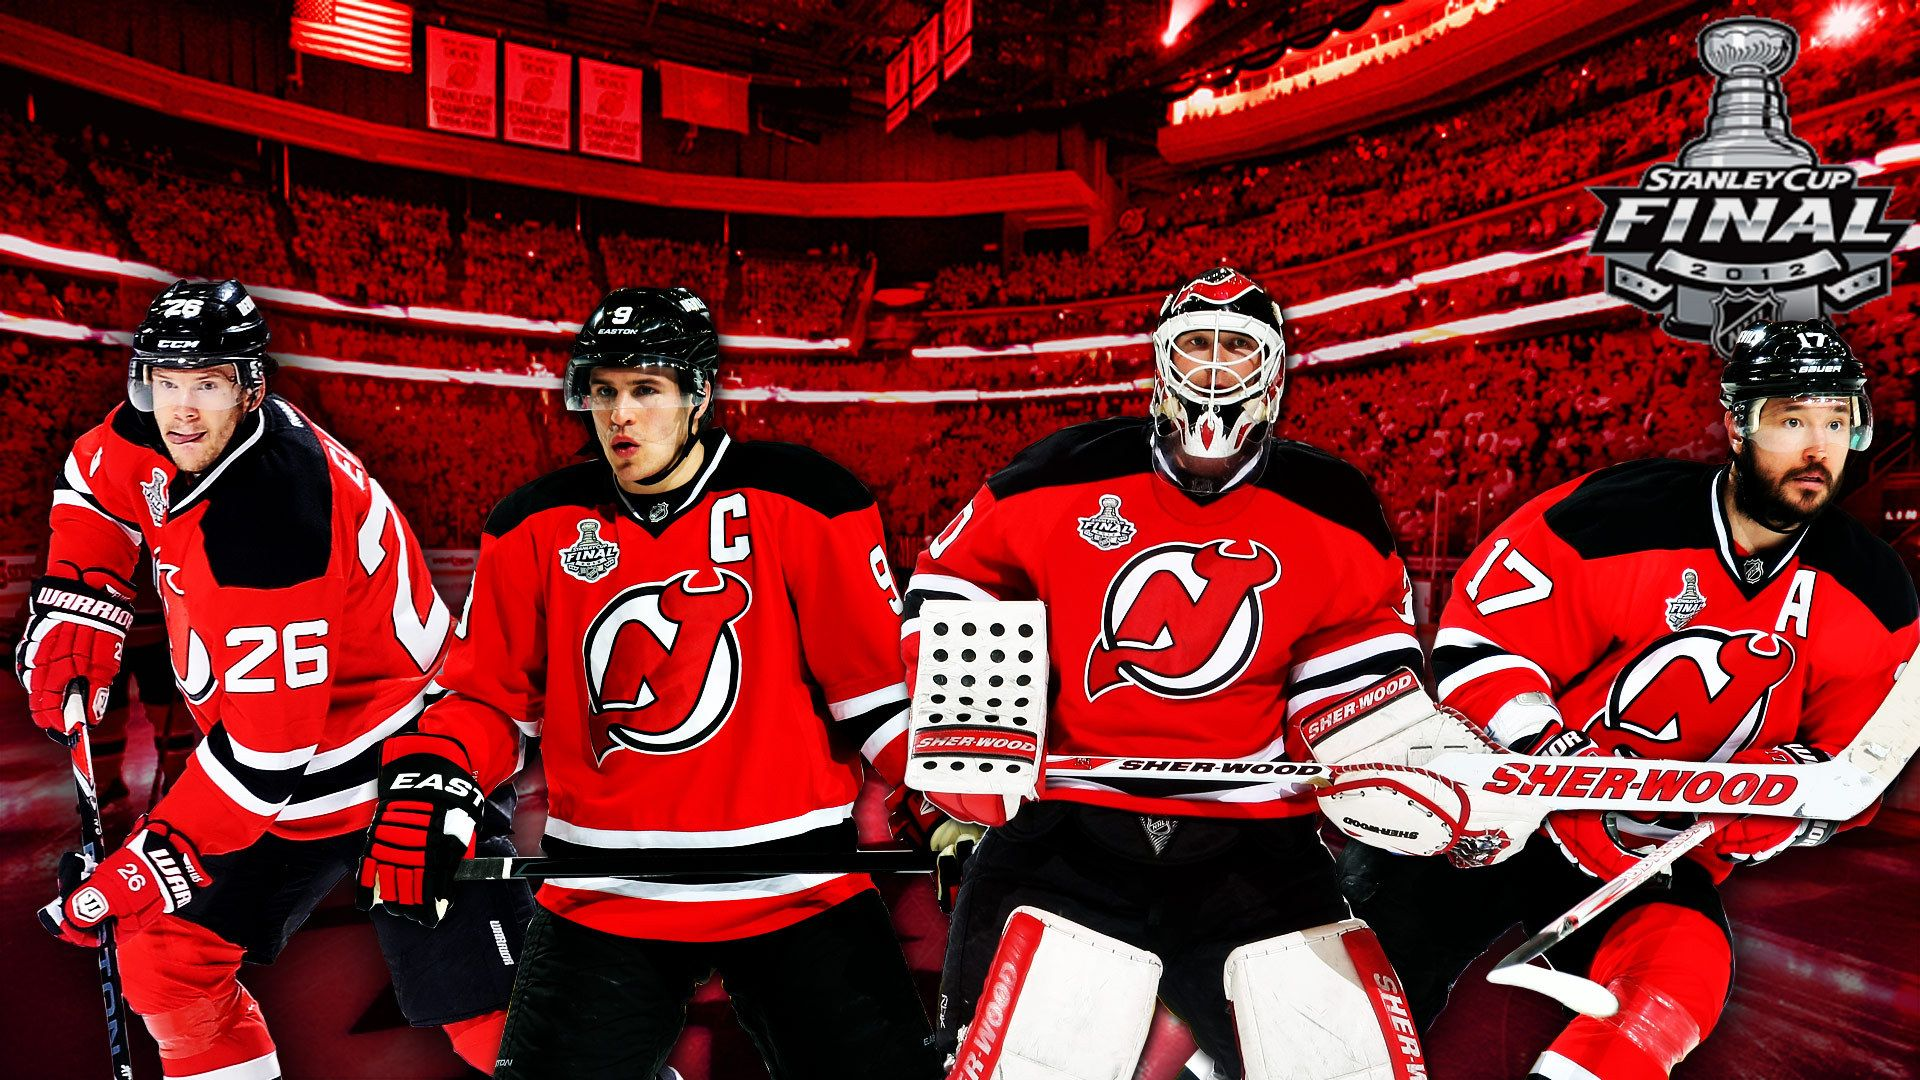 2012 Playoff Central New Jersey Devils New Jersey Sports